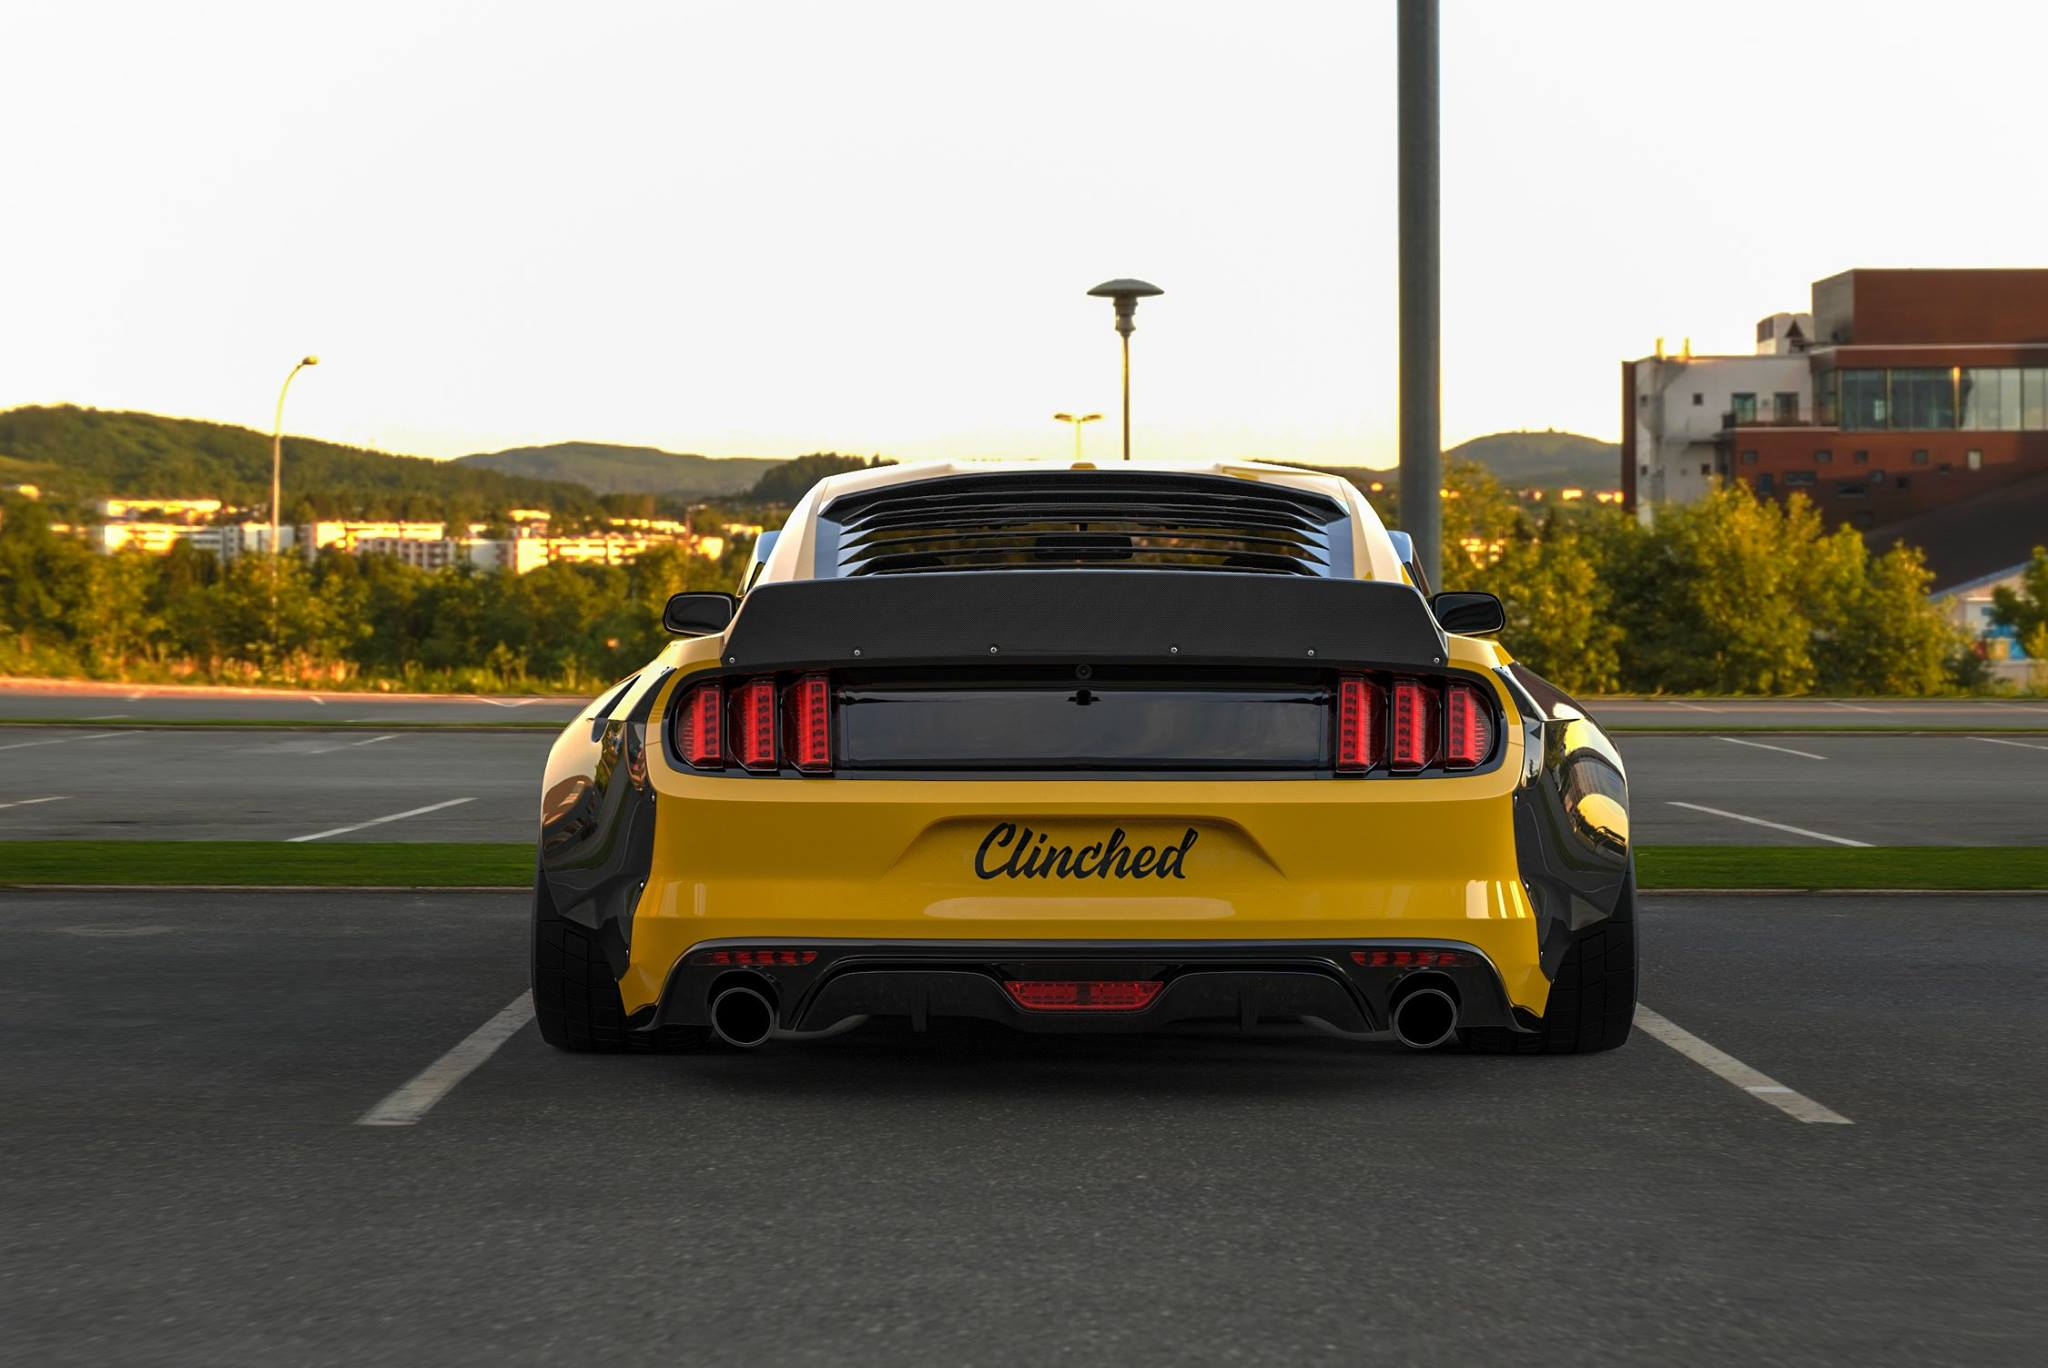 Ford Mustang widebody by Clinched (1)